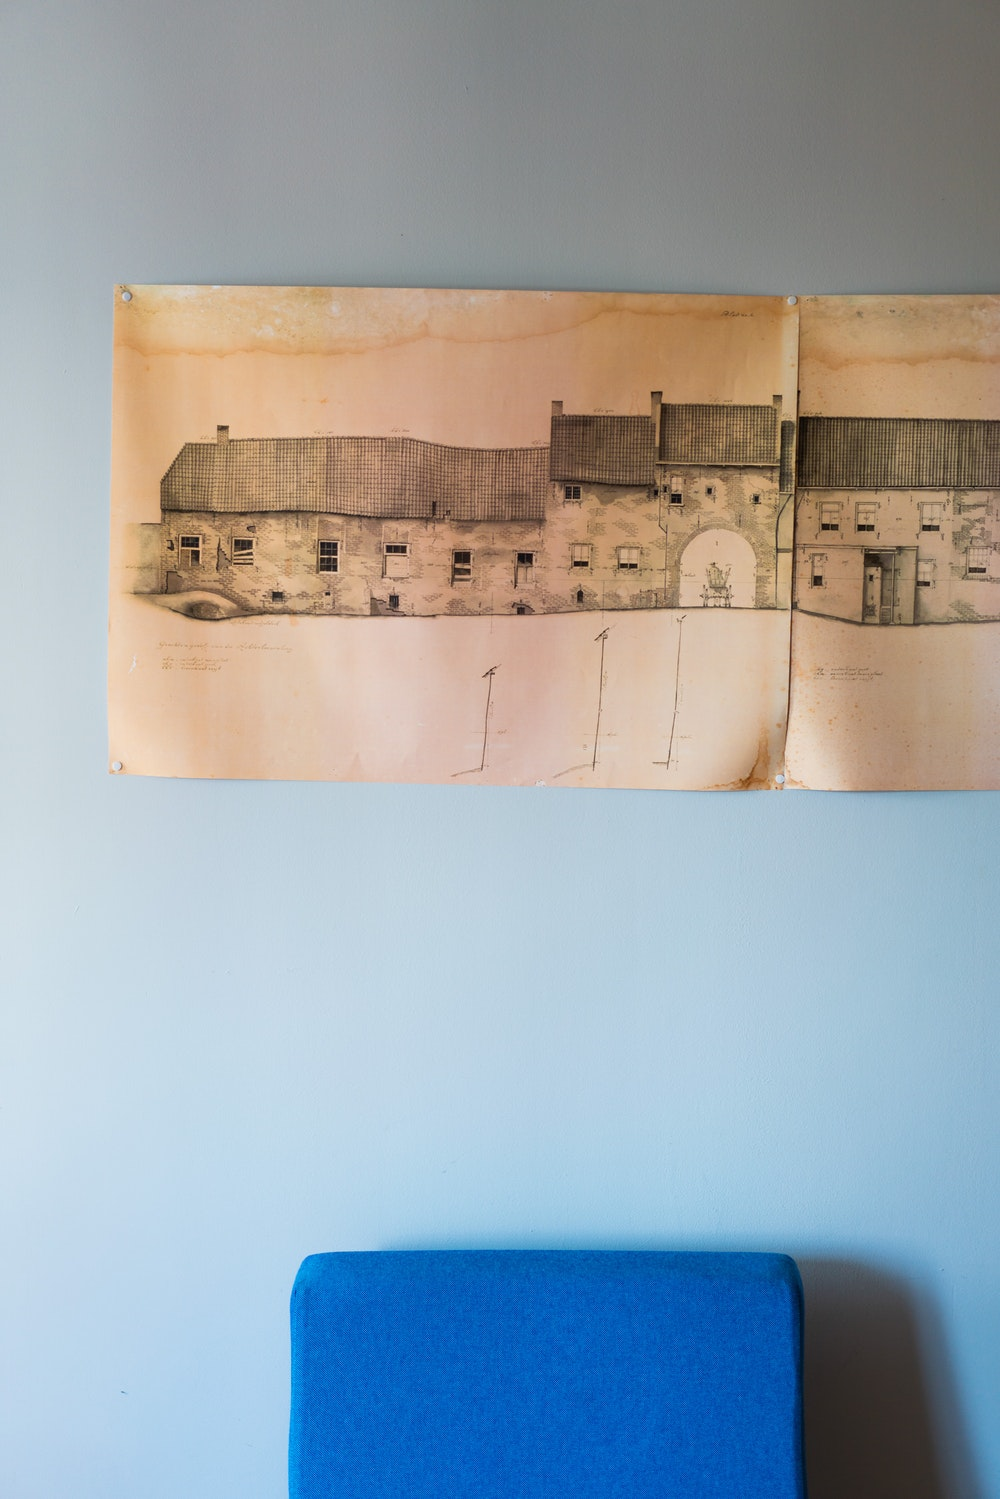 Vintage map wall art in a hotel room